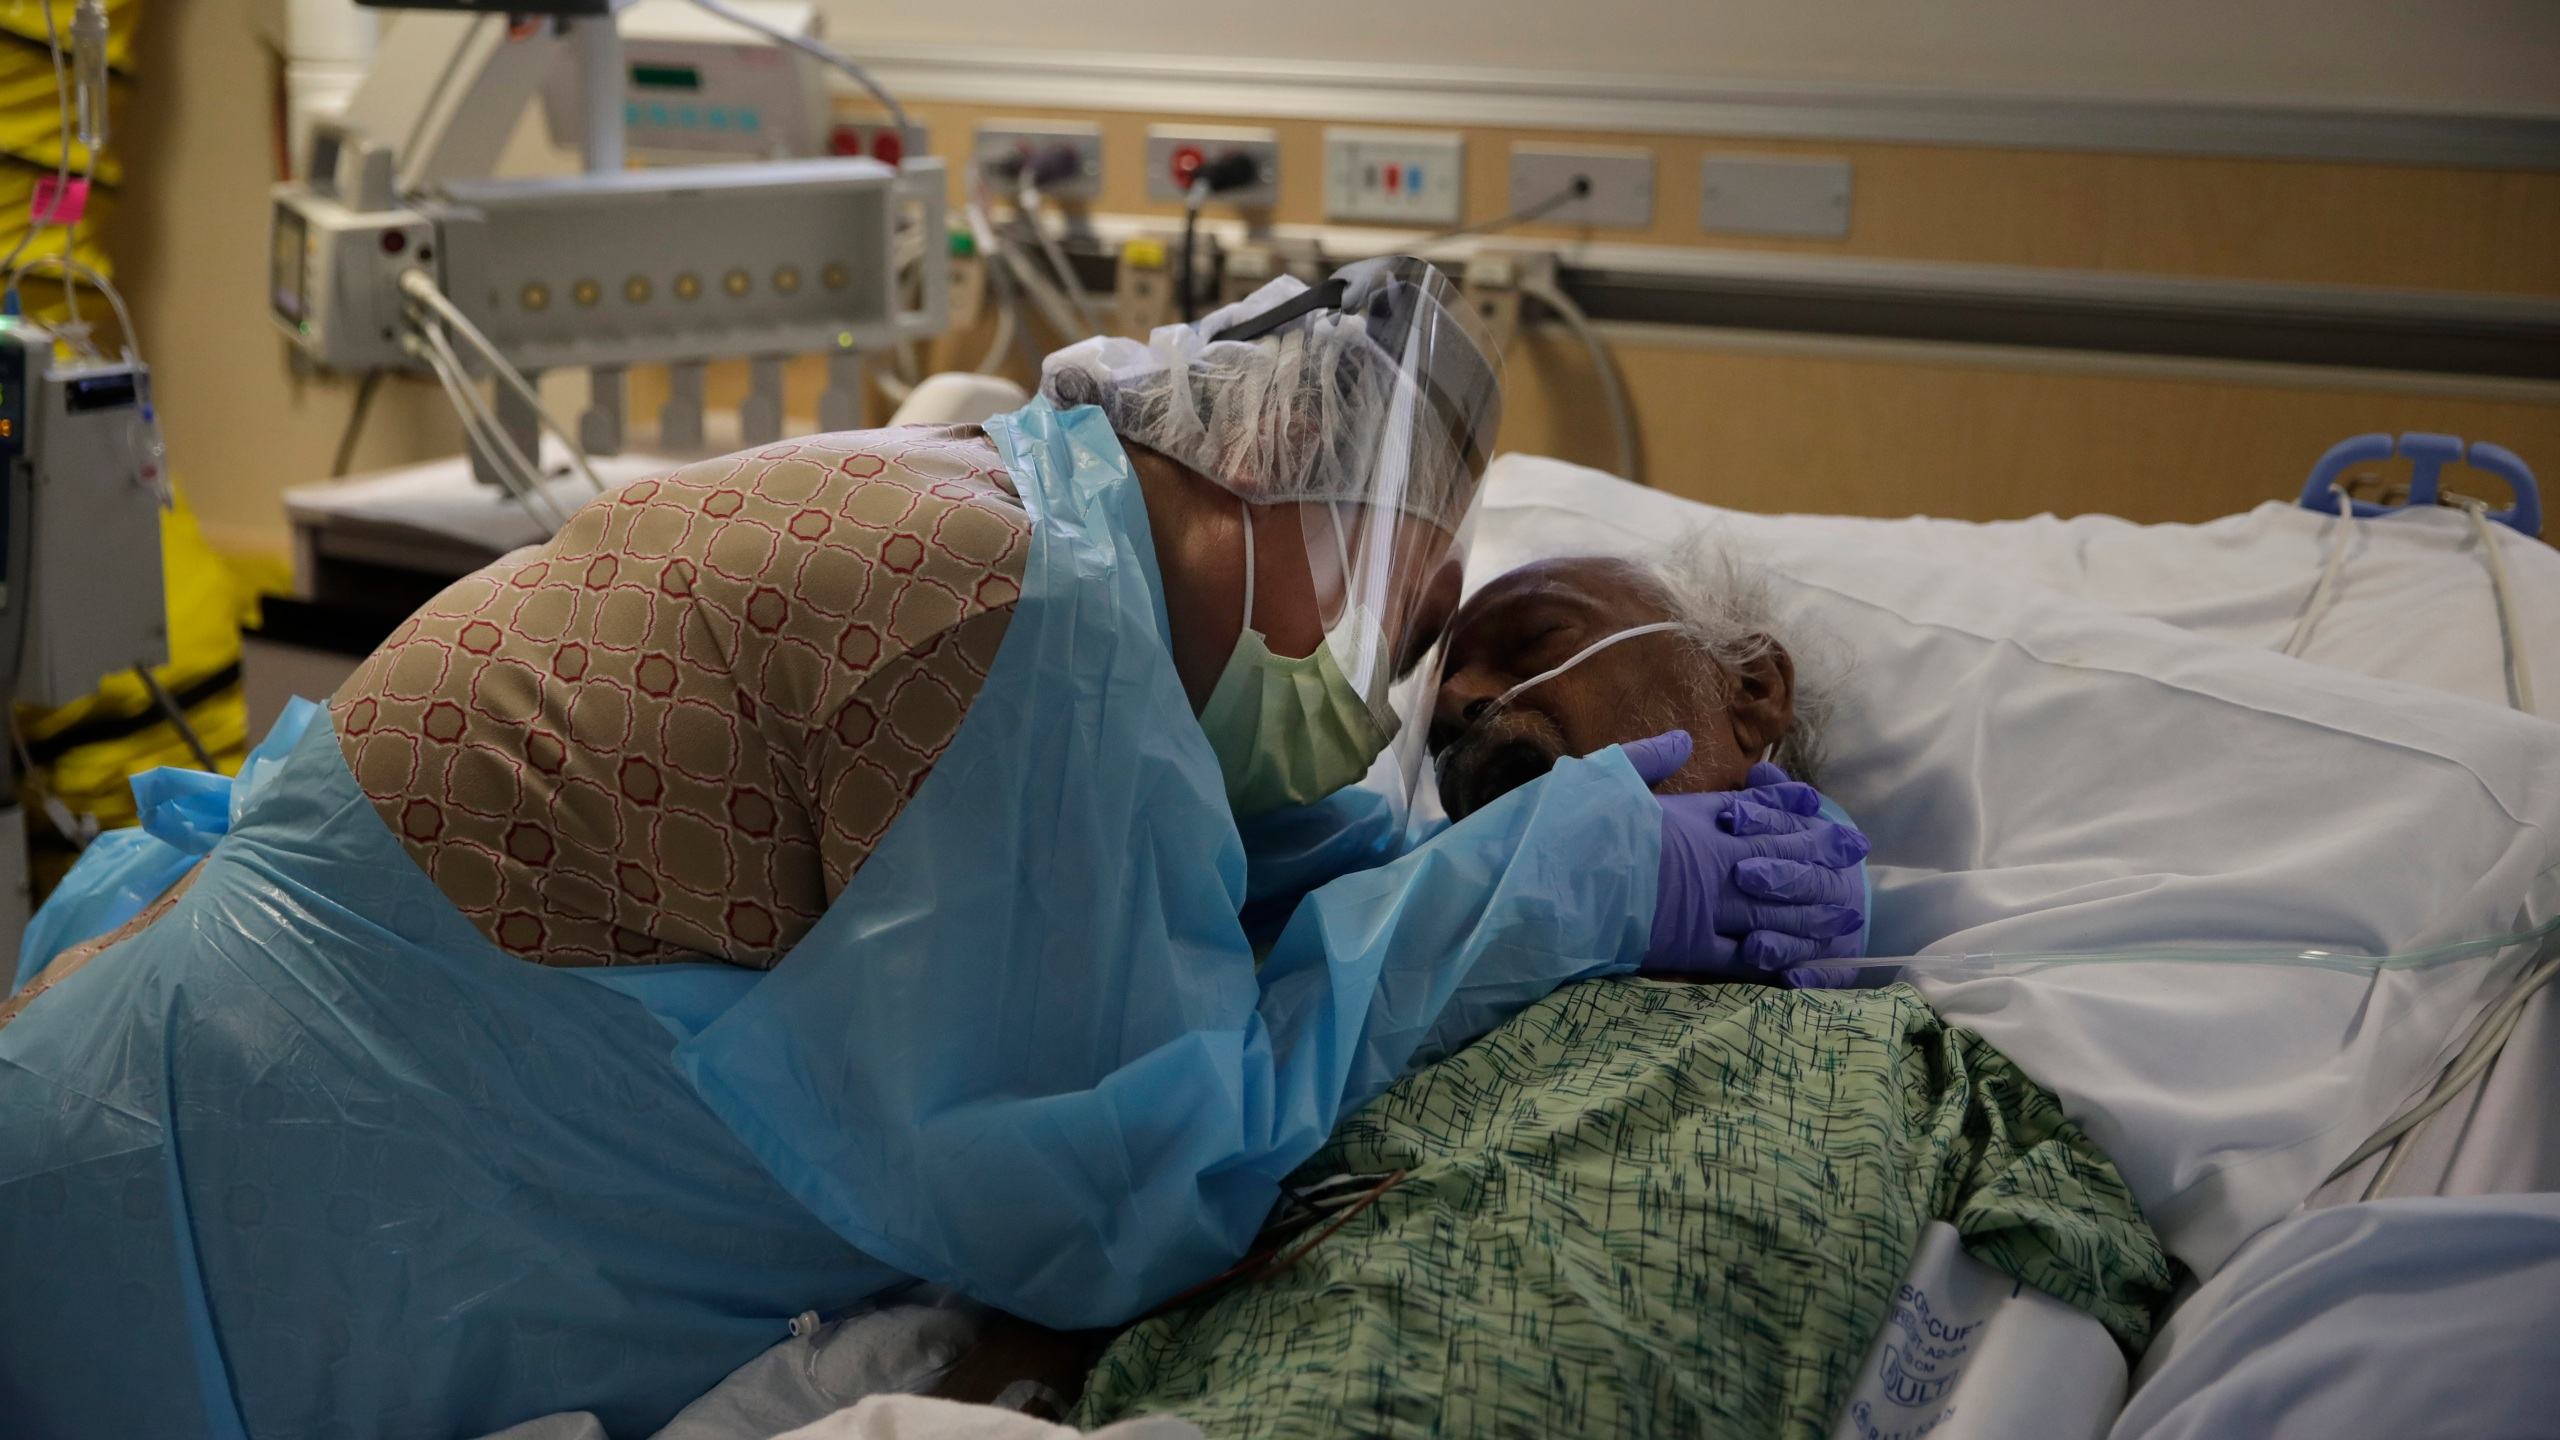 In this Friday, July 31, 2020, file photo, Romelia Navarro, 64, weeps while hugging her husband, Antonio, in his final moments in a COVID-19 unit at St. Jude Medical Center in Fullerton, Calif. On Monday, Oct. 11, 2021, California's coronavirus death toll reached 70,000. (AP Photo/Jae C. Hong, File)